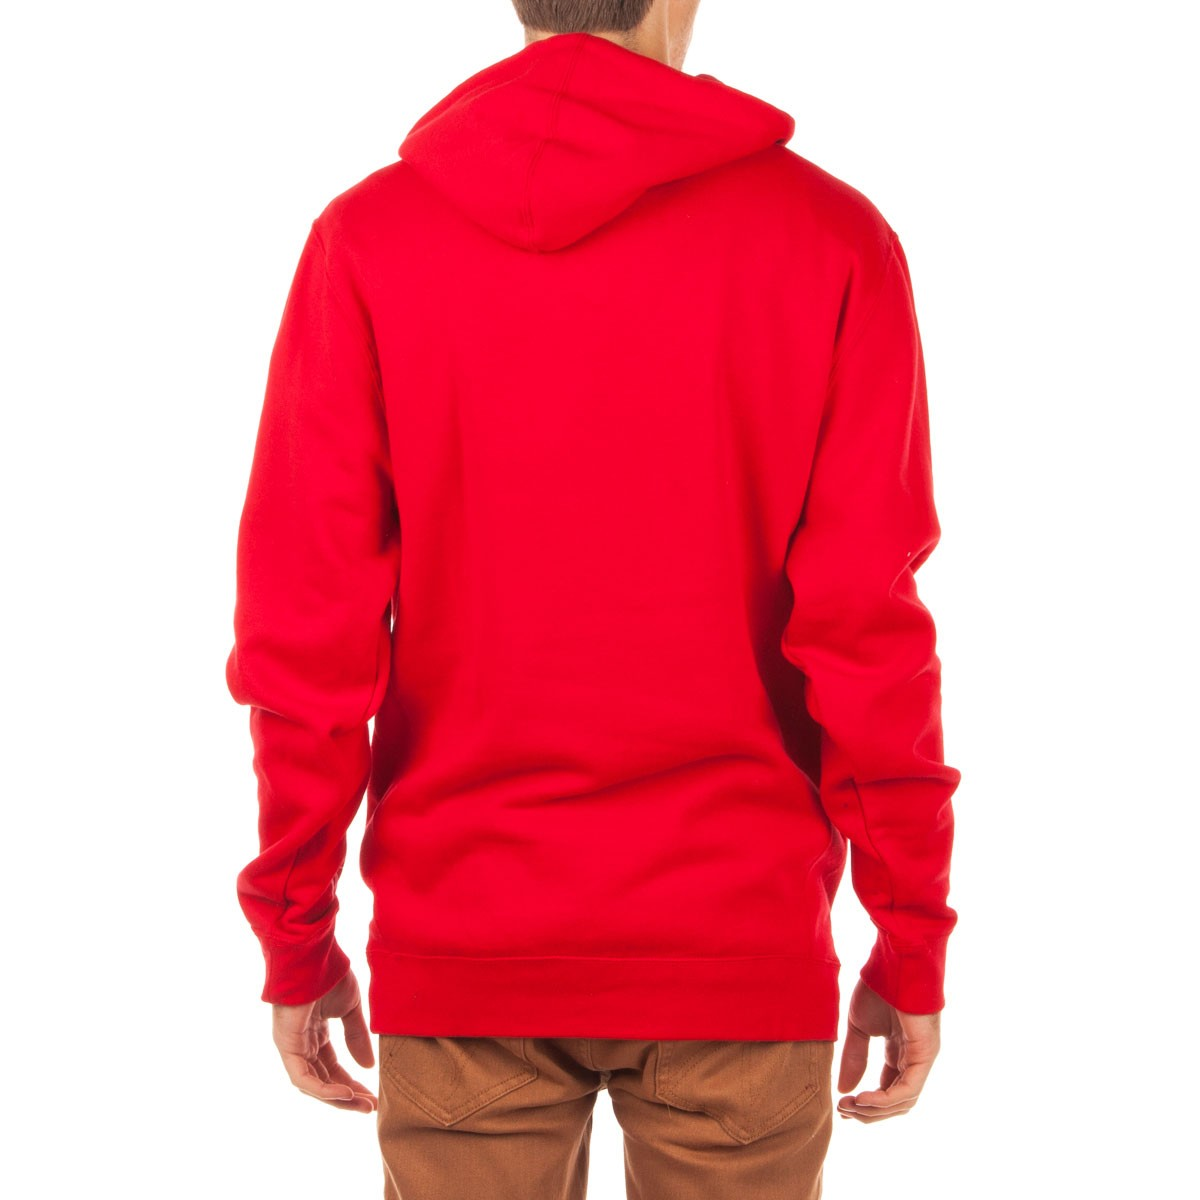 Diamond supply co red hoodie